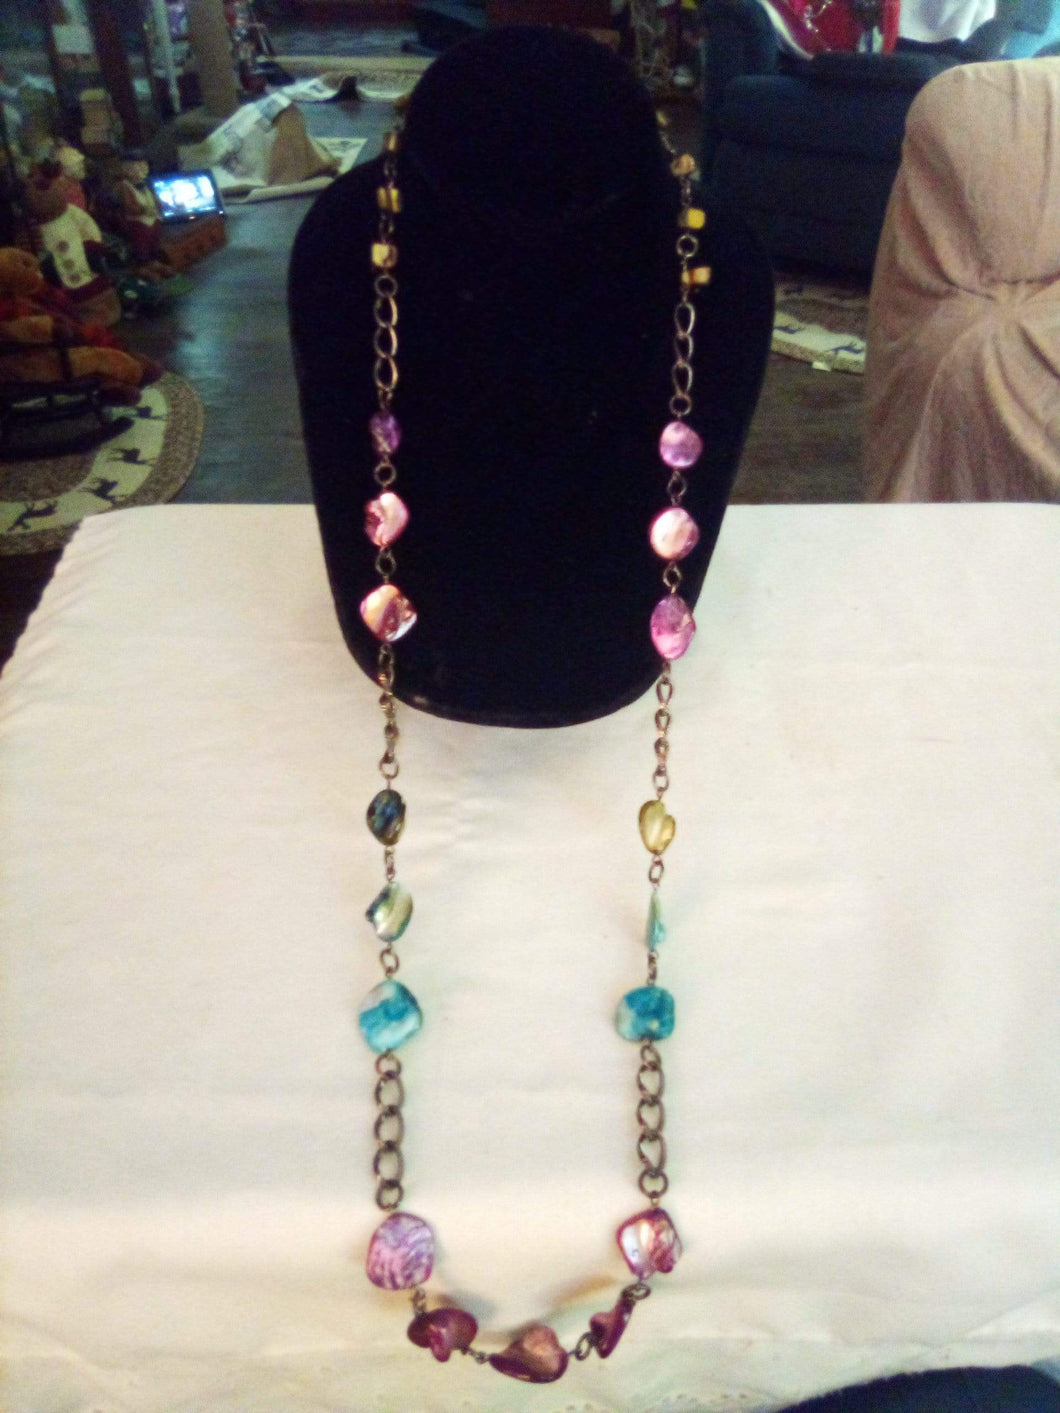 Colorful long dressy necklace - B&P'sringsnthings